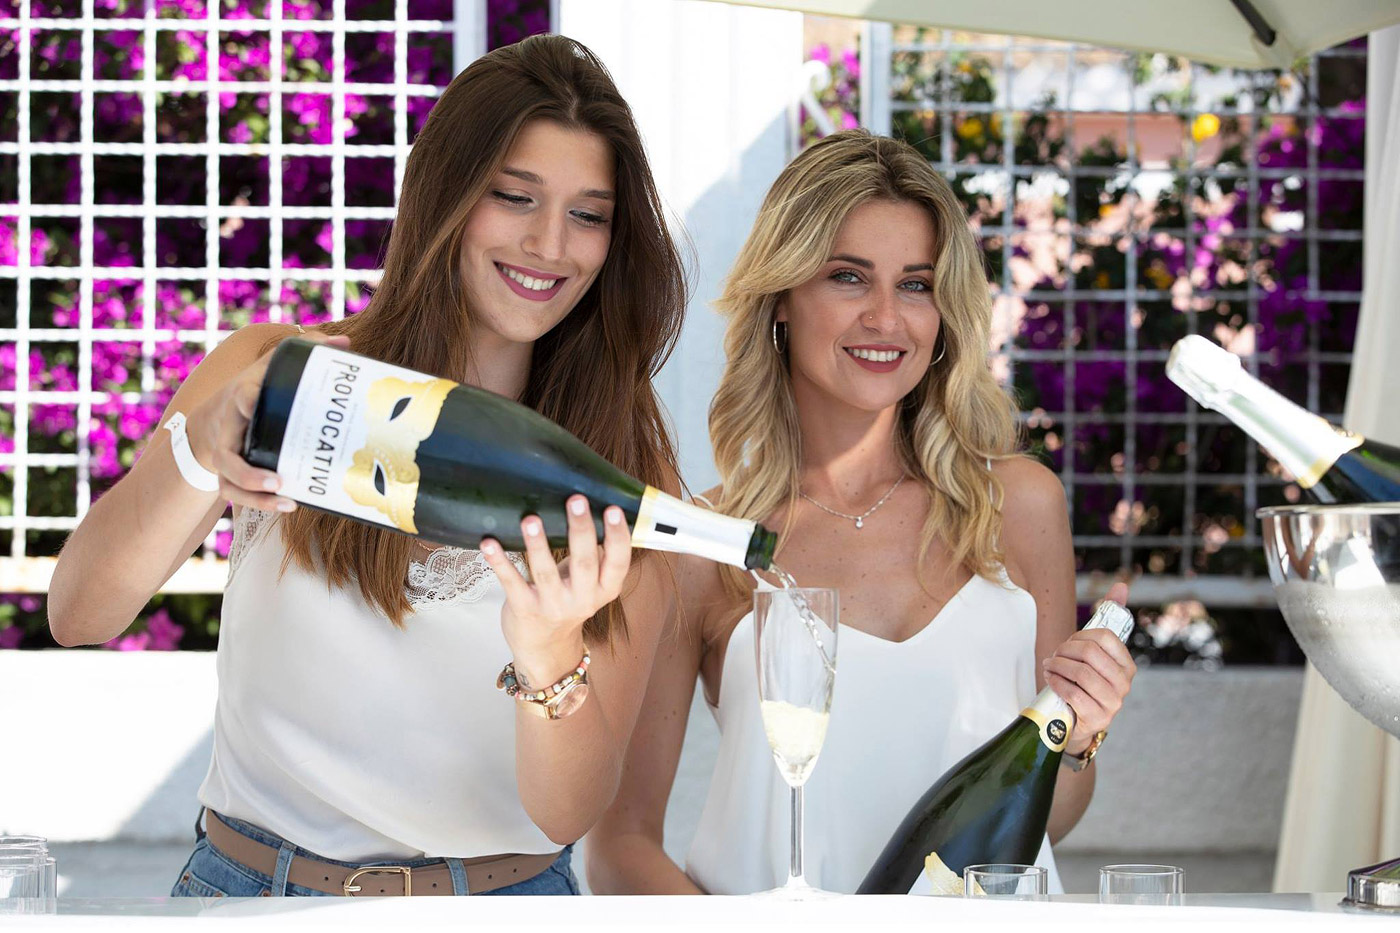 The Superyacht Cup is a celebration for all who enjoy sailing.